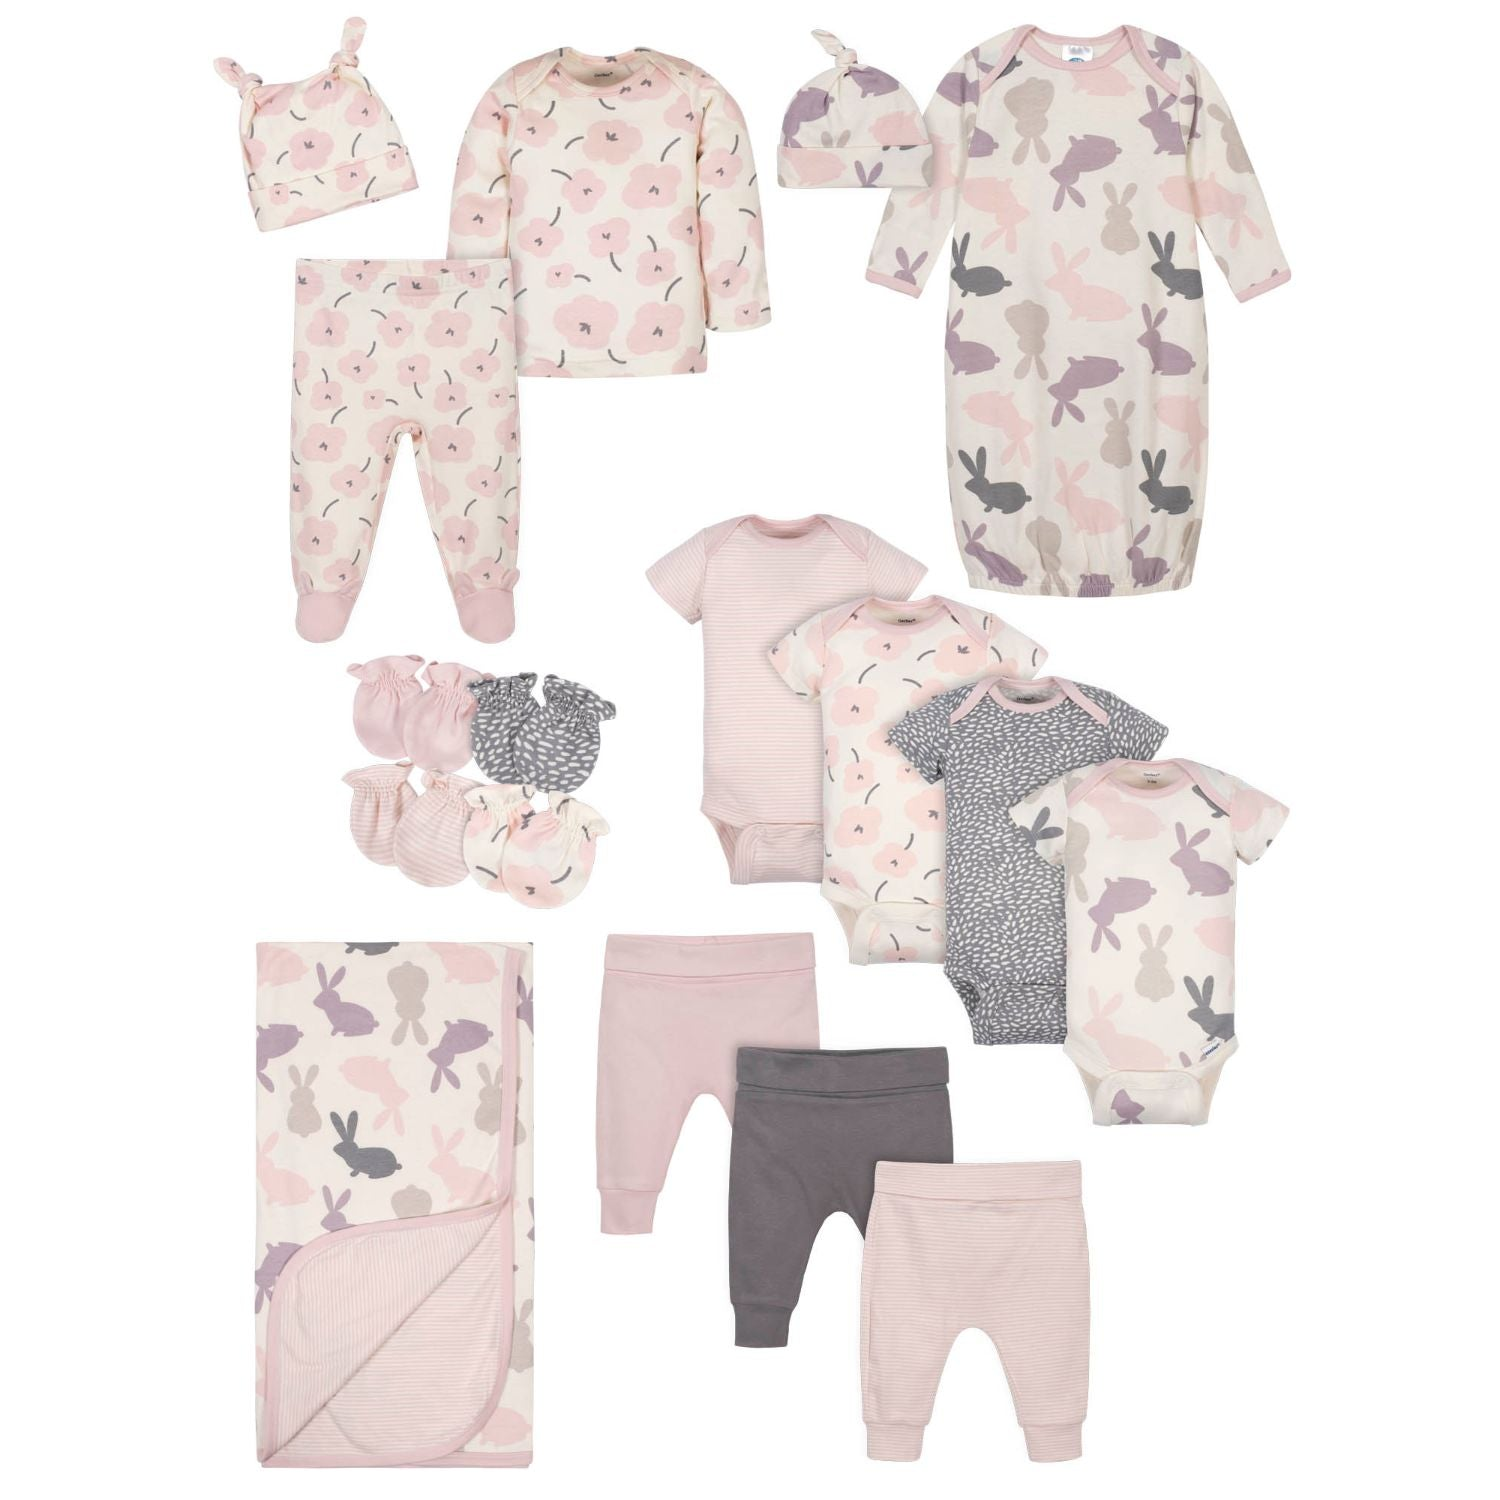 17-Piece Baby Girls Bunny Gift Set-Gerber Childrenswear Wholesale